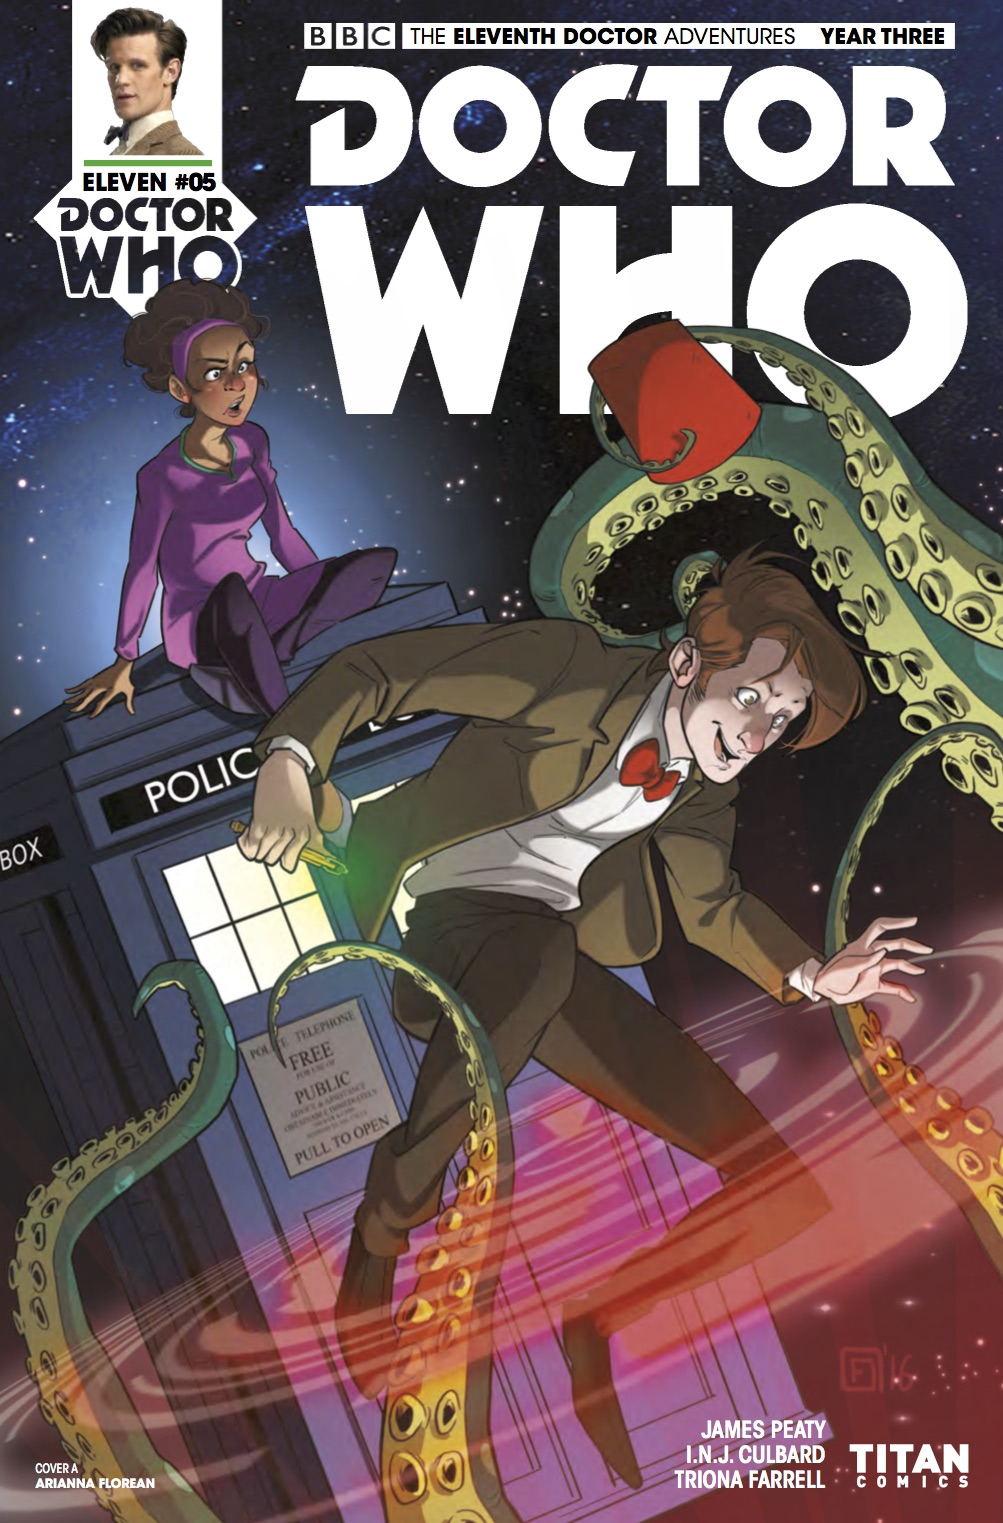 Eleventh Doctor 3_5 Cover A (Credit: Titan / Arianna Florean)